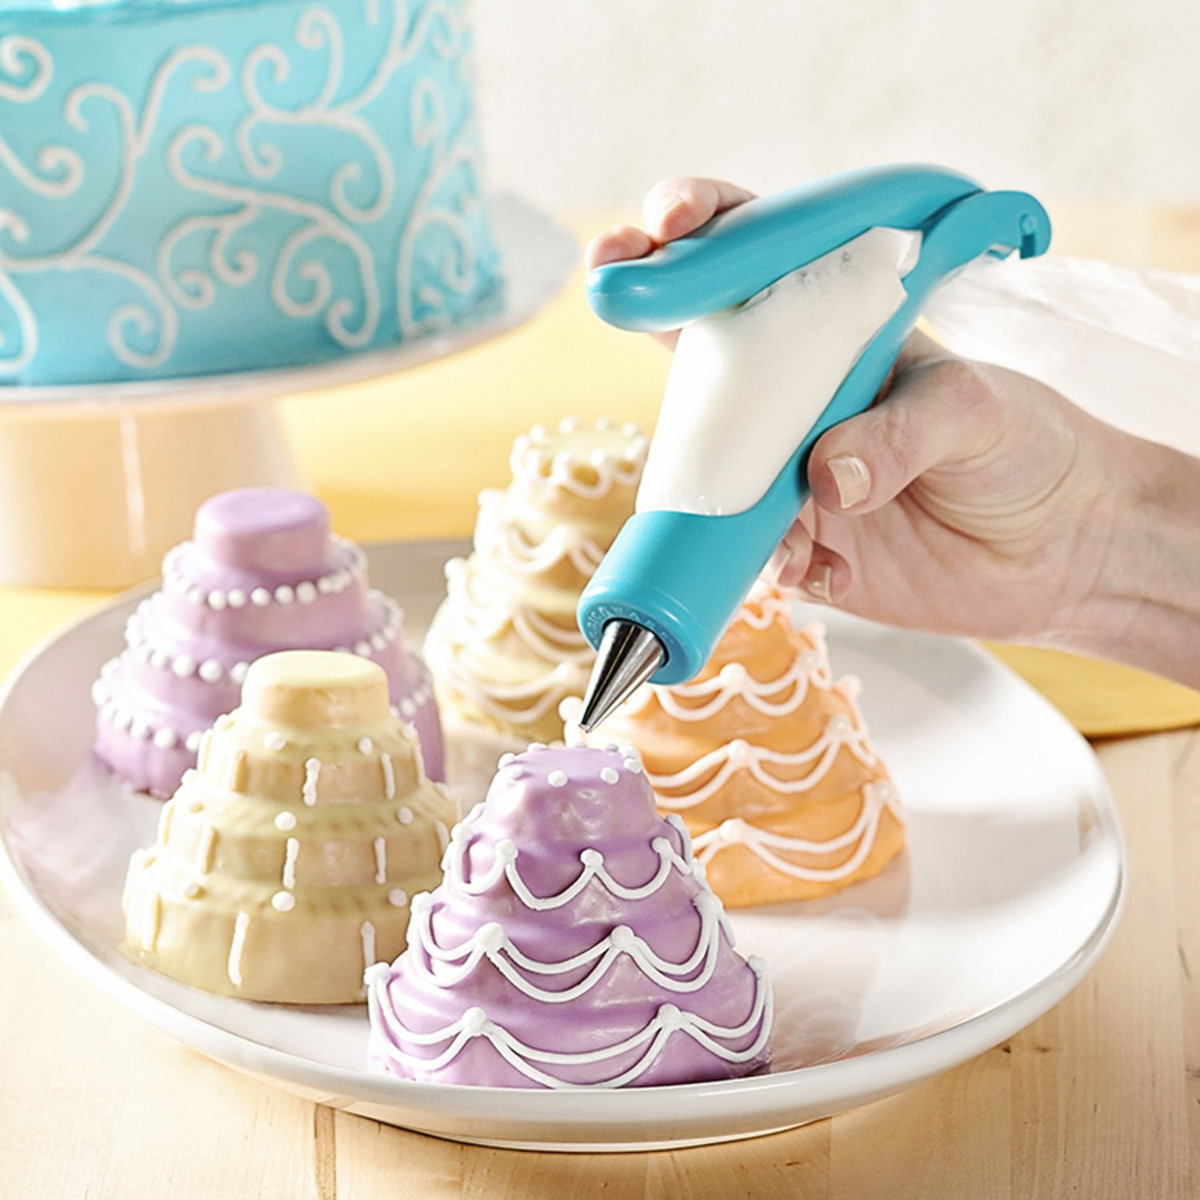 Cake Decorating Icing Nozzles : Pastry Icing Piping Bag Nozzle Tips Fondant Cake Sugar ...